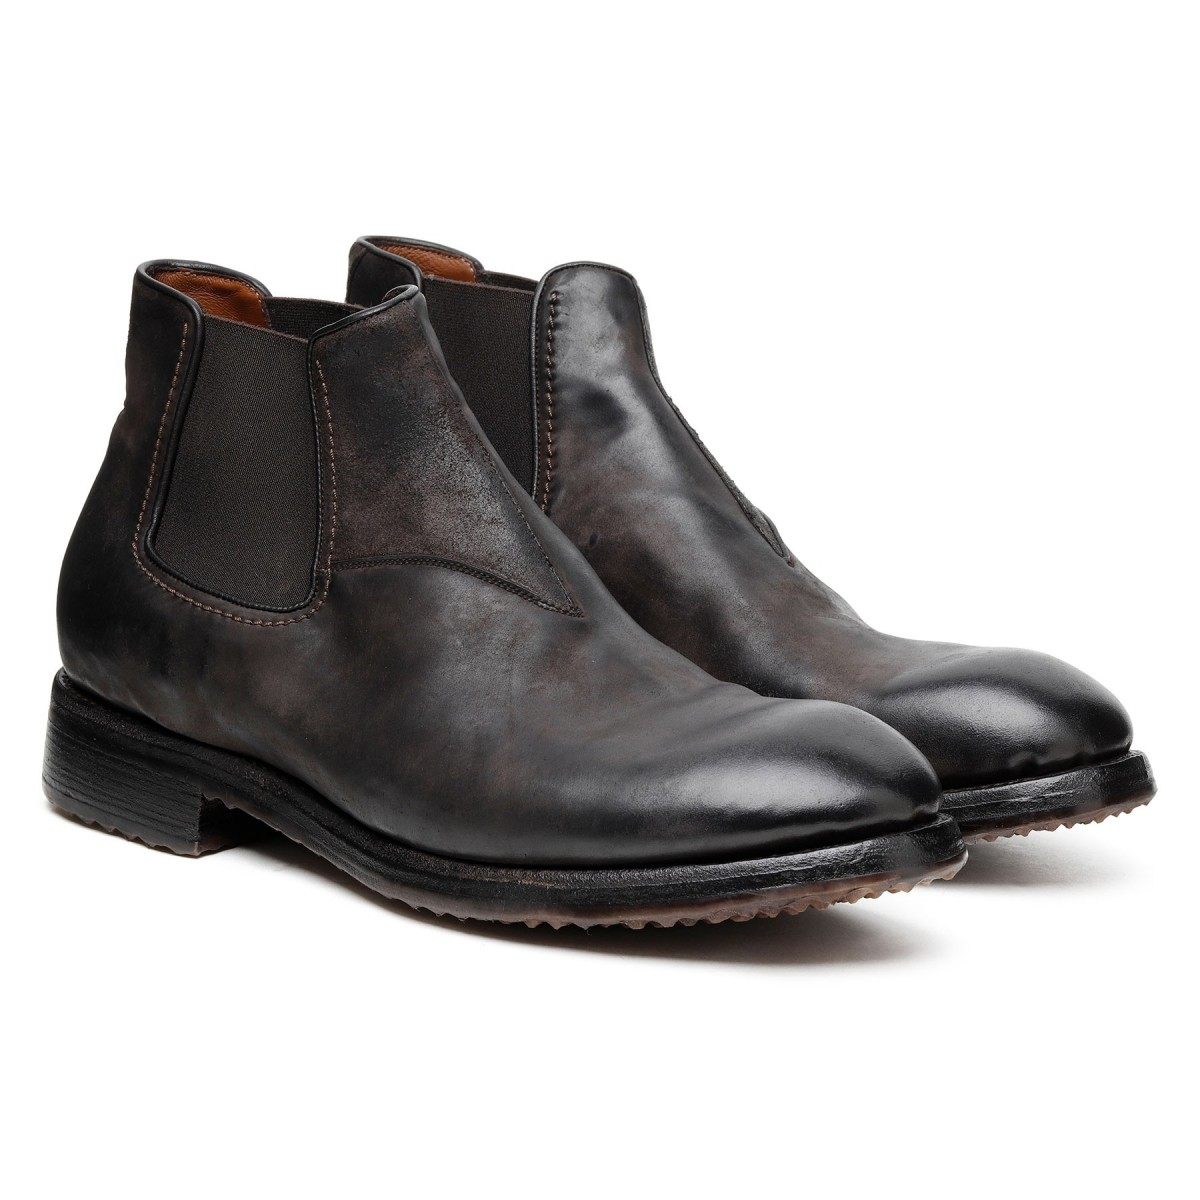 Beatles ankle boots in dark brown...